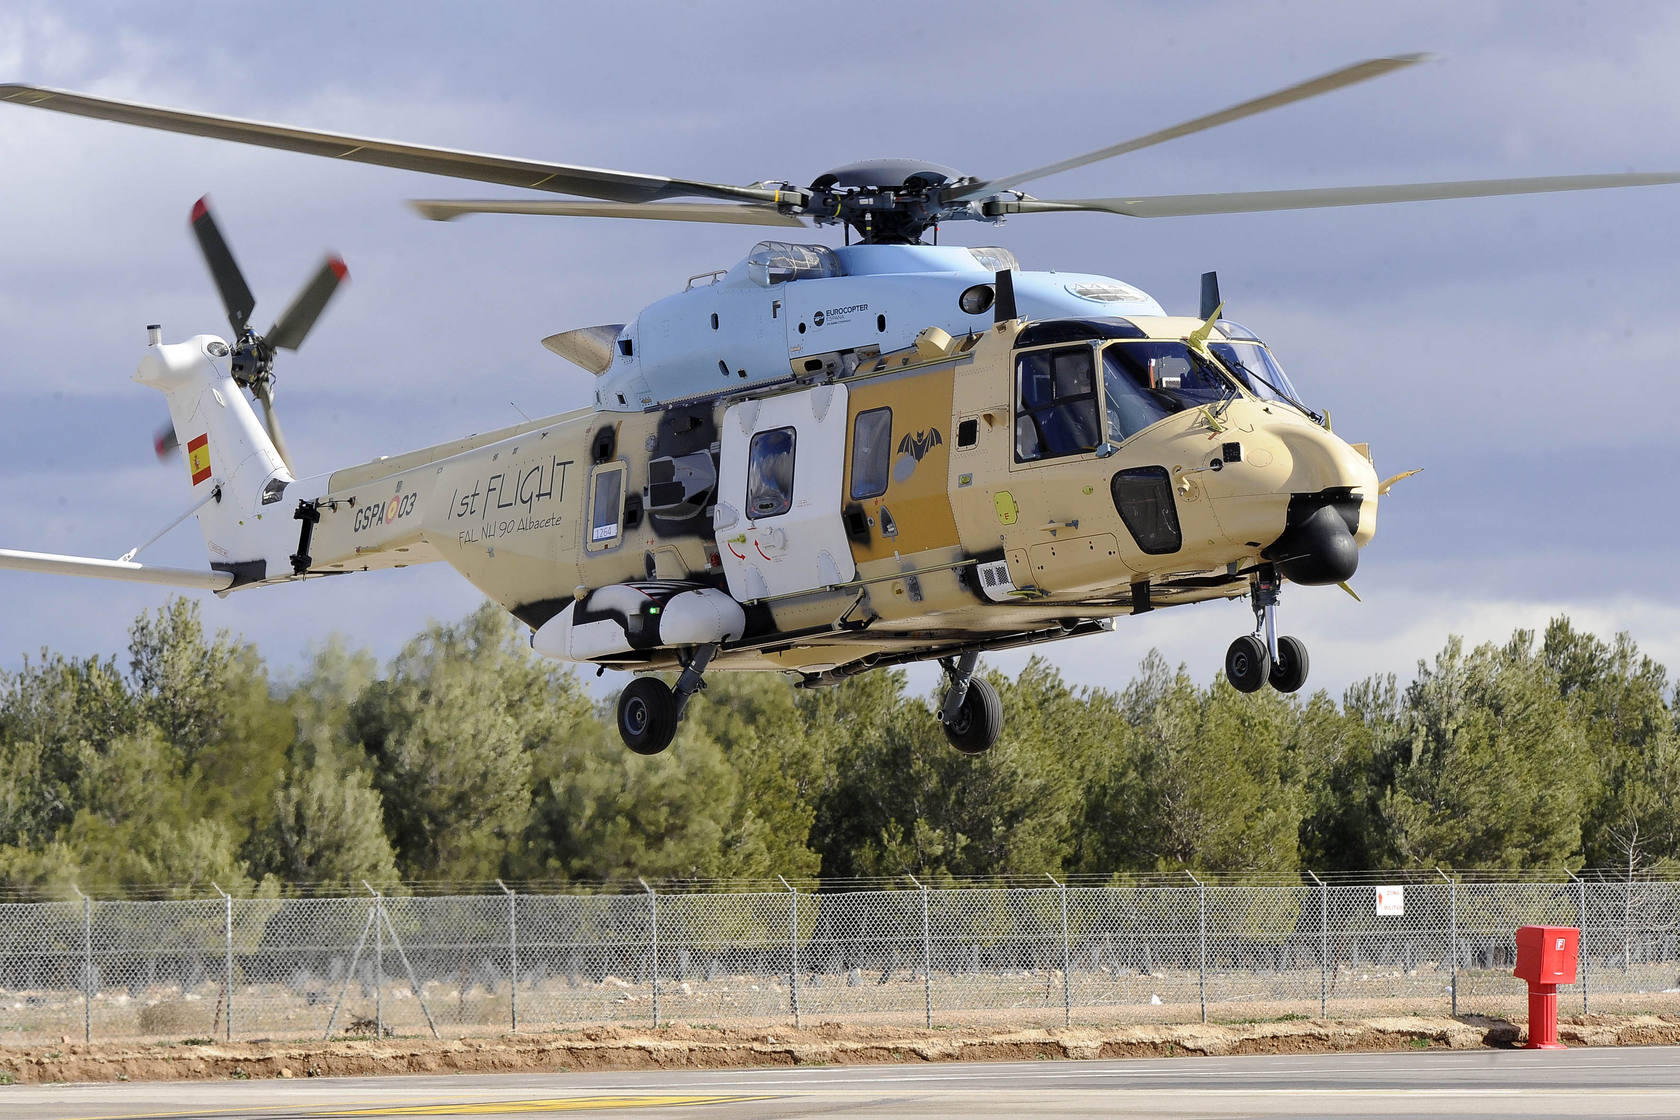 Despega el primer NH90 totalmente ensamblado en Albacete